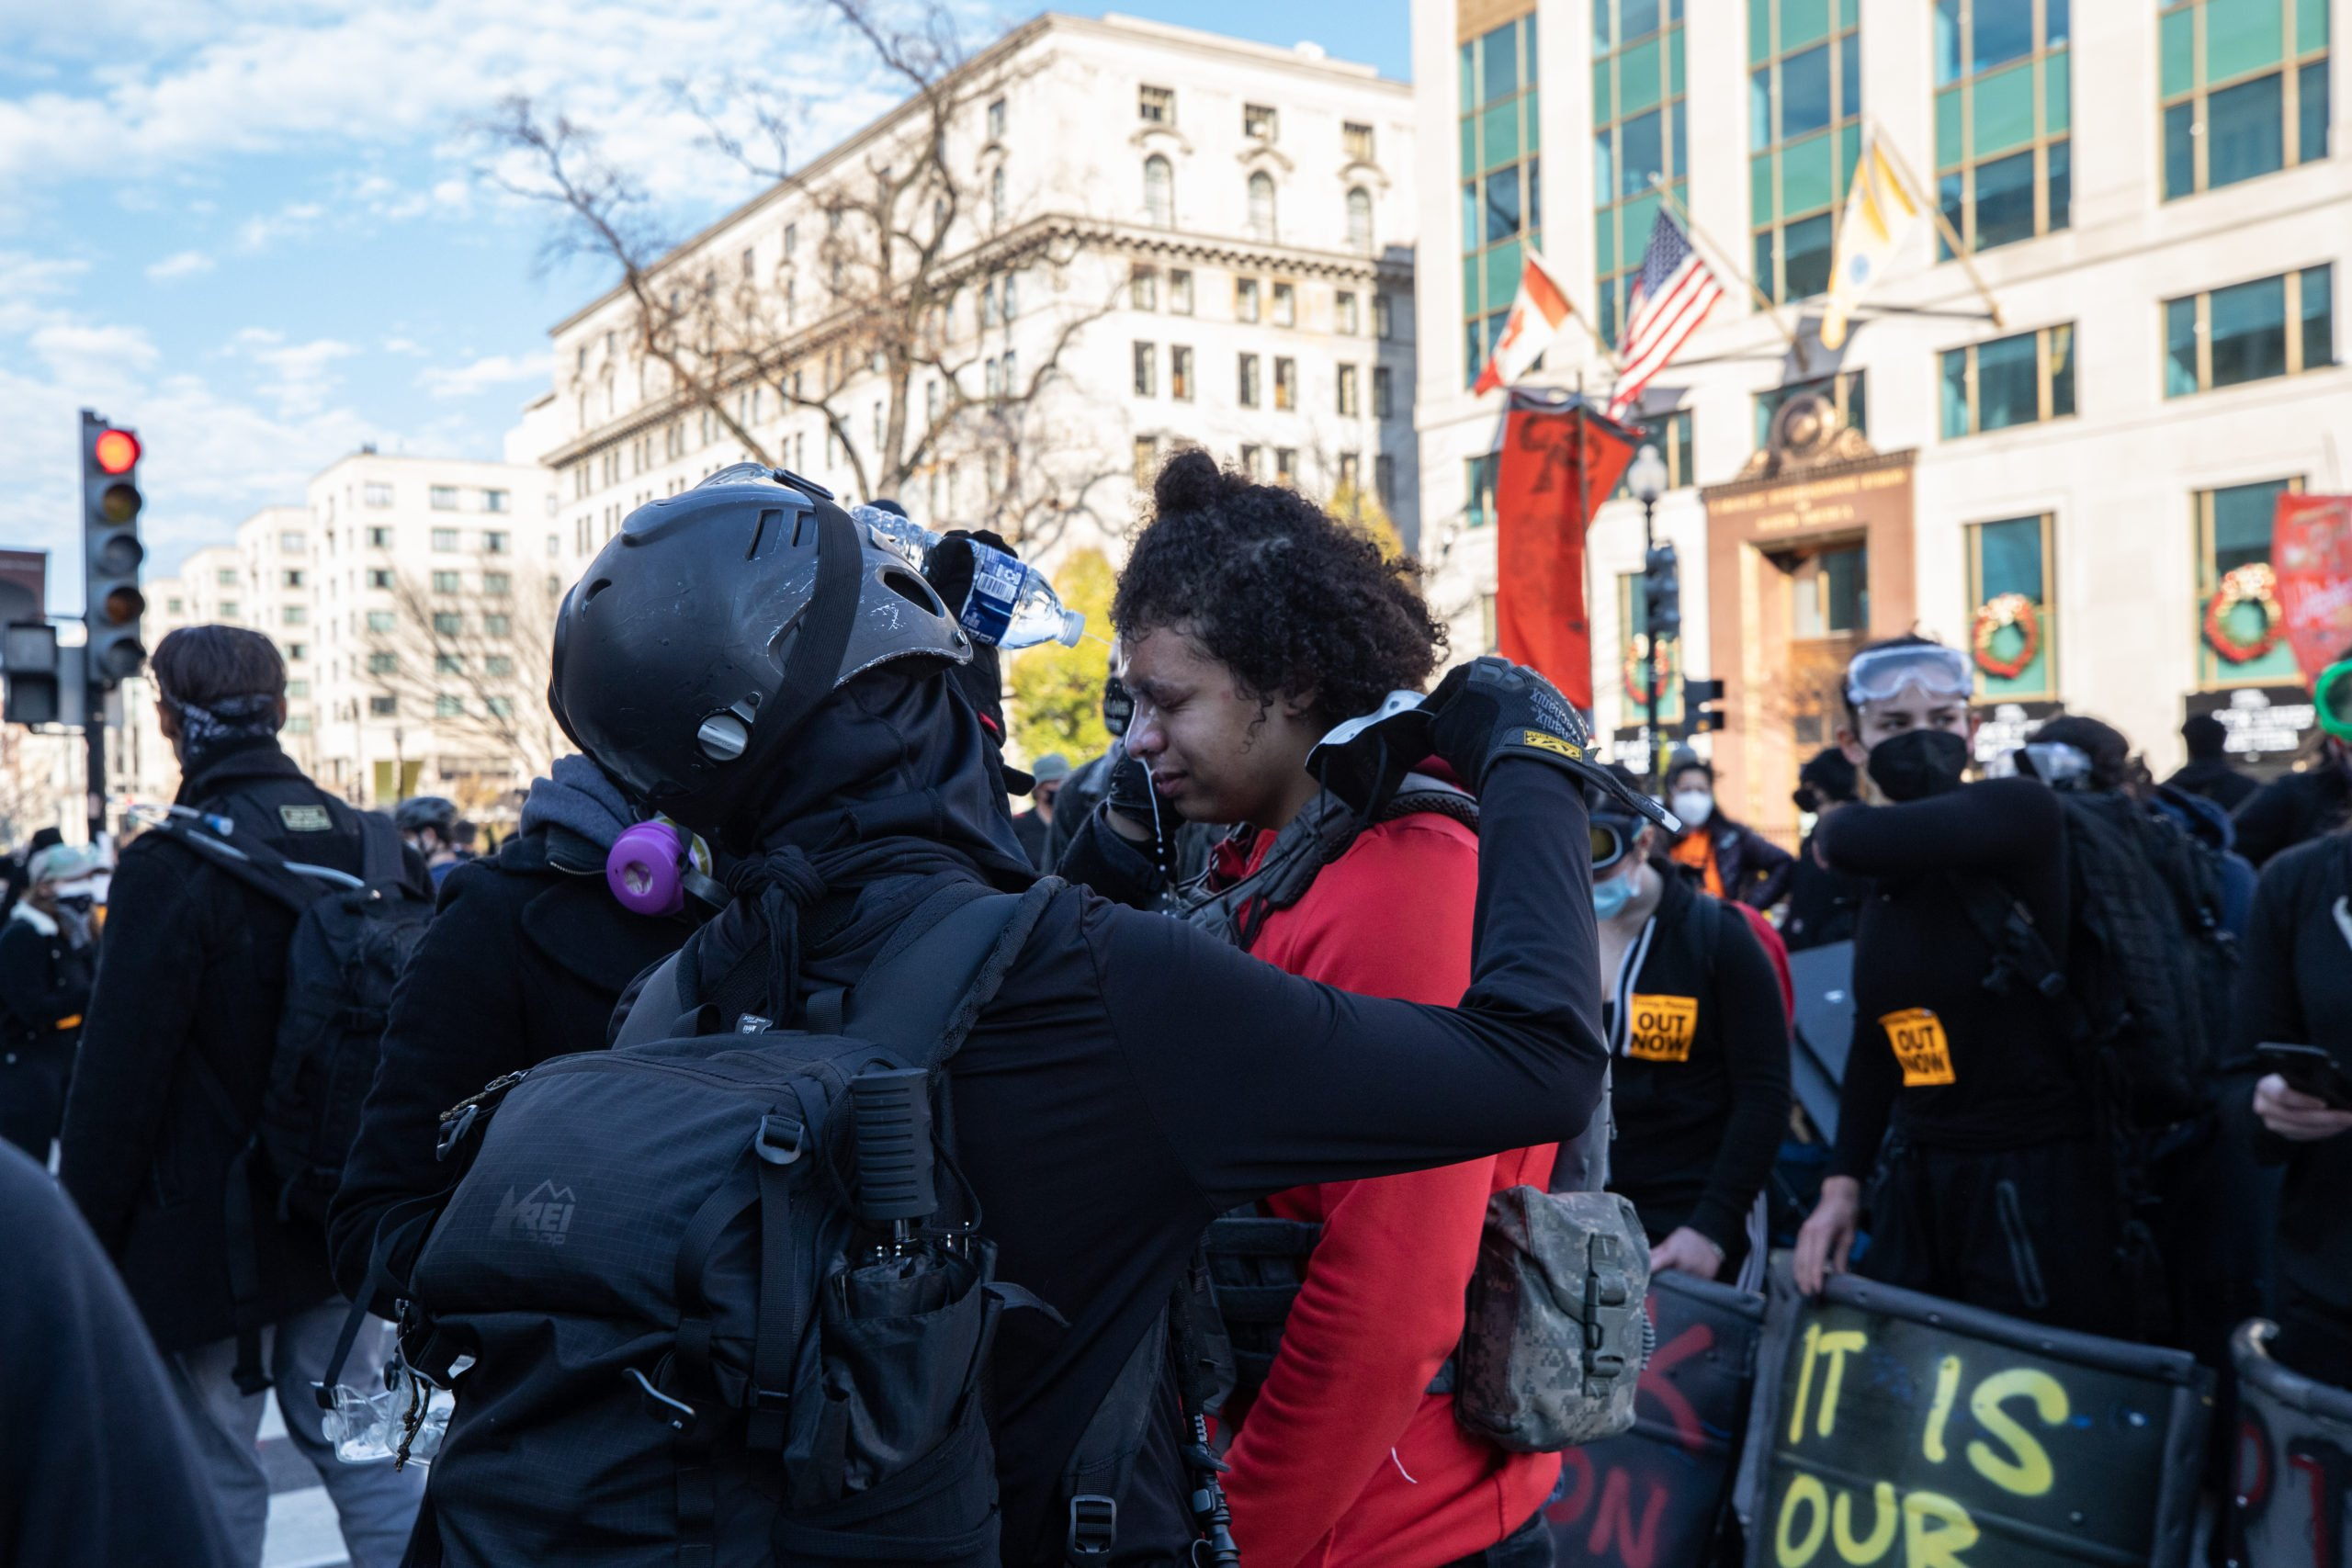 A protester was sprayed with a chemical agent they described as mace by Metropolitan Police Department officers in Black Lives Matter Plaza in Washington, D.C. on Dec. 12, 2020. (Photo: Kaylee Greenlee - Daily Caller News Foundation)